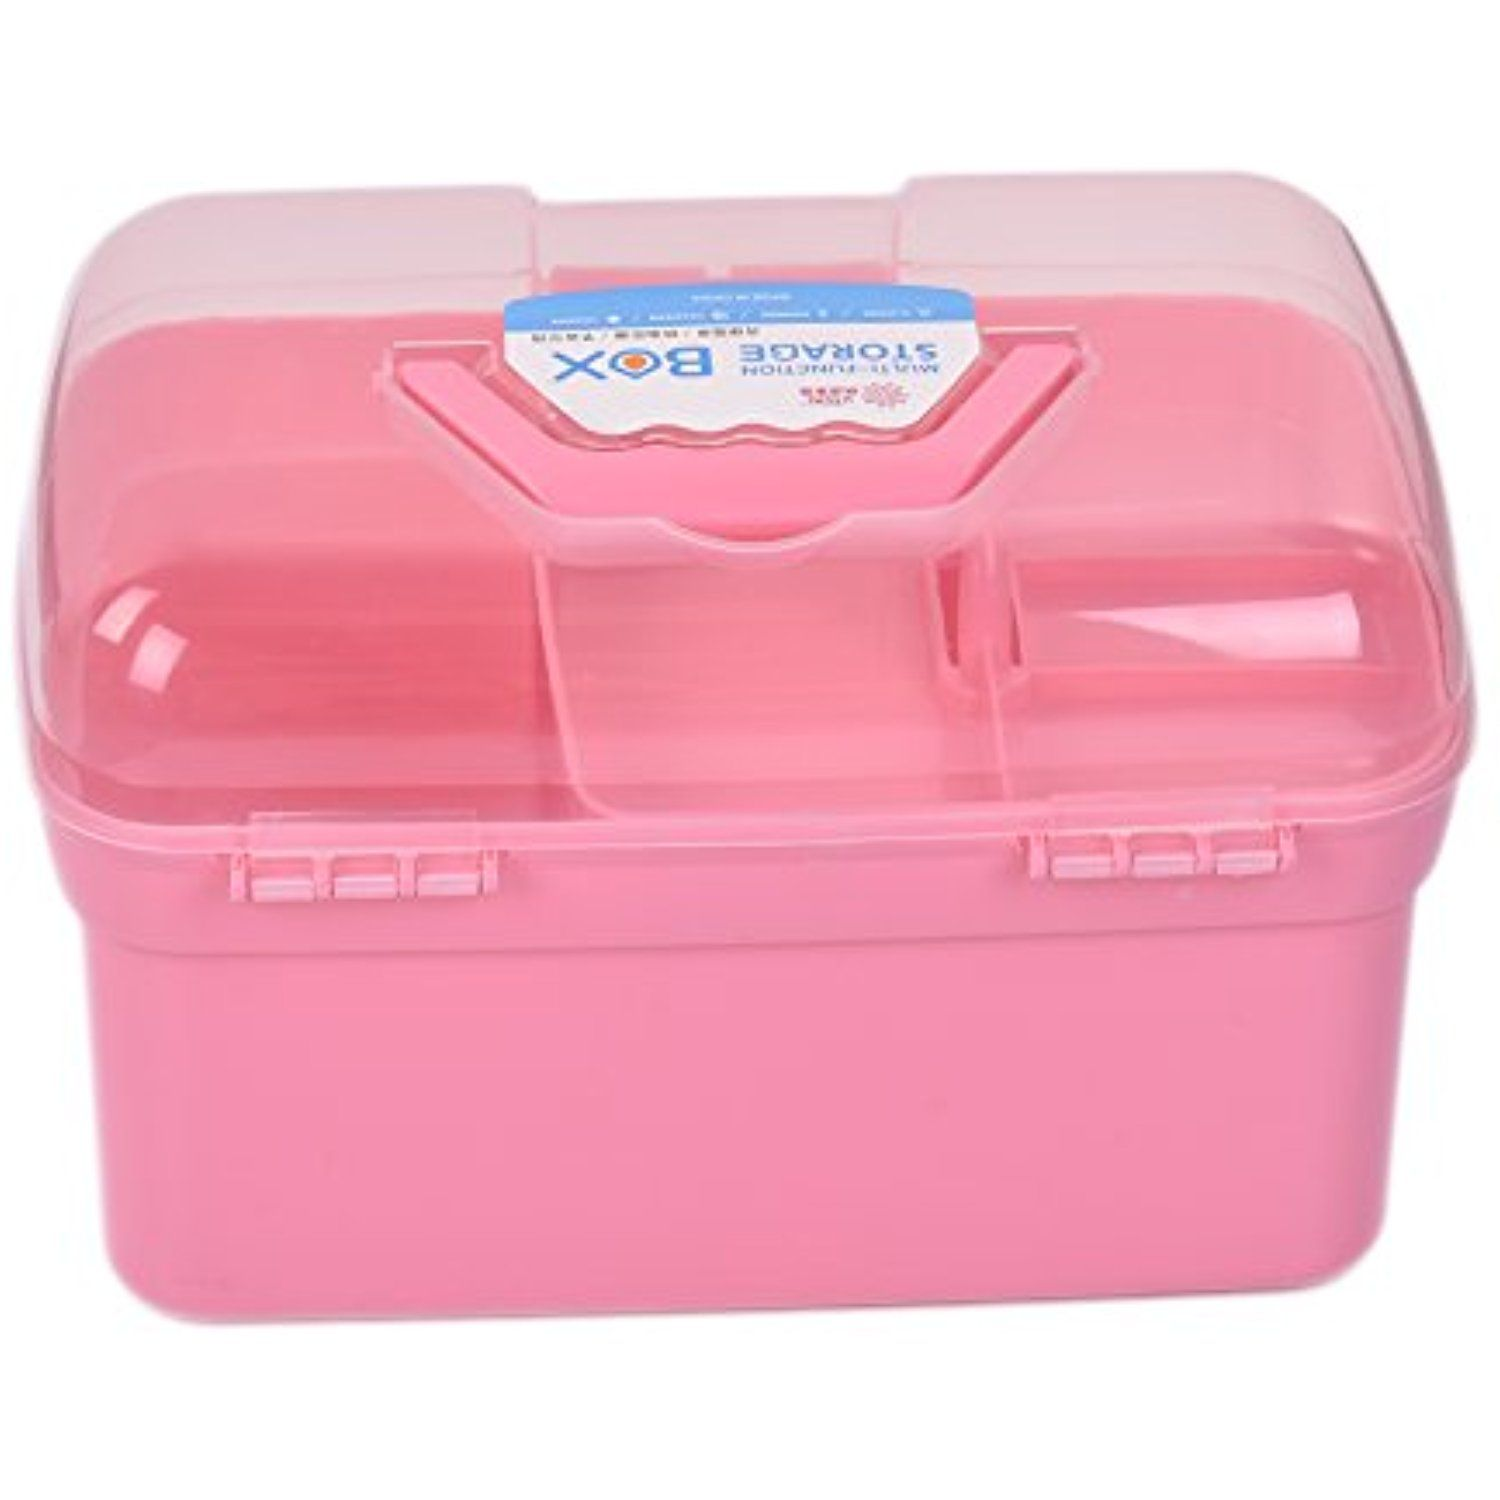 Pet Multi functional Storage Box Dustproof Outdoor Lightweight